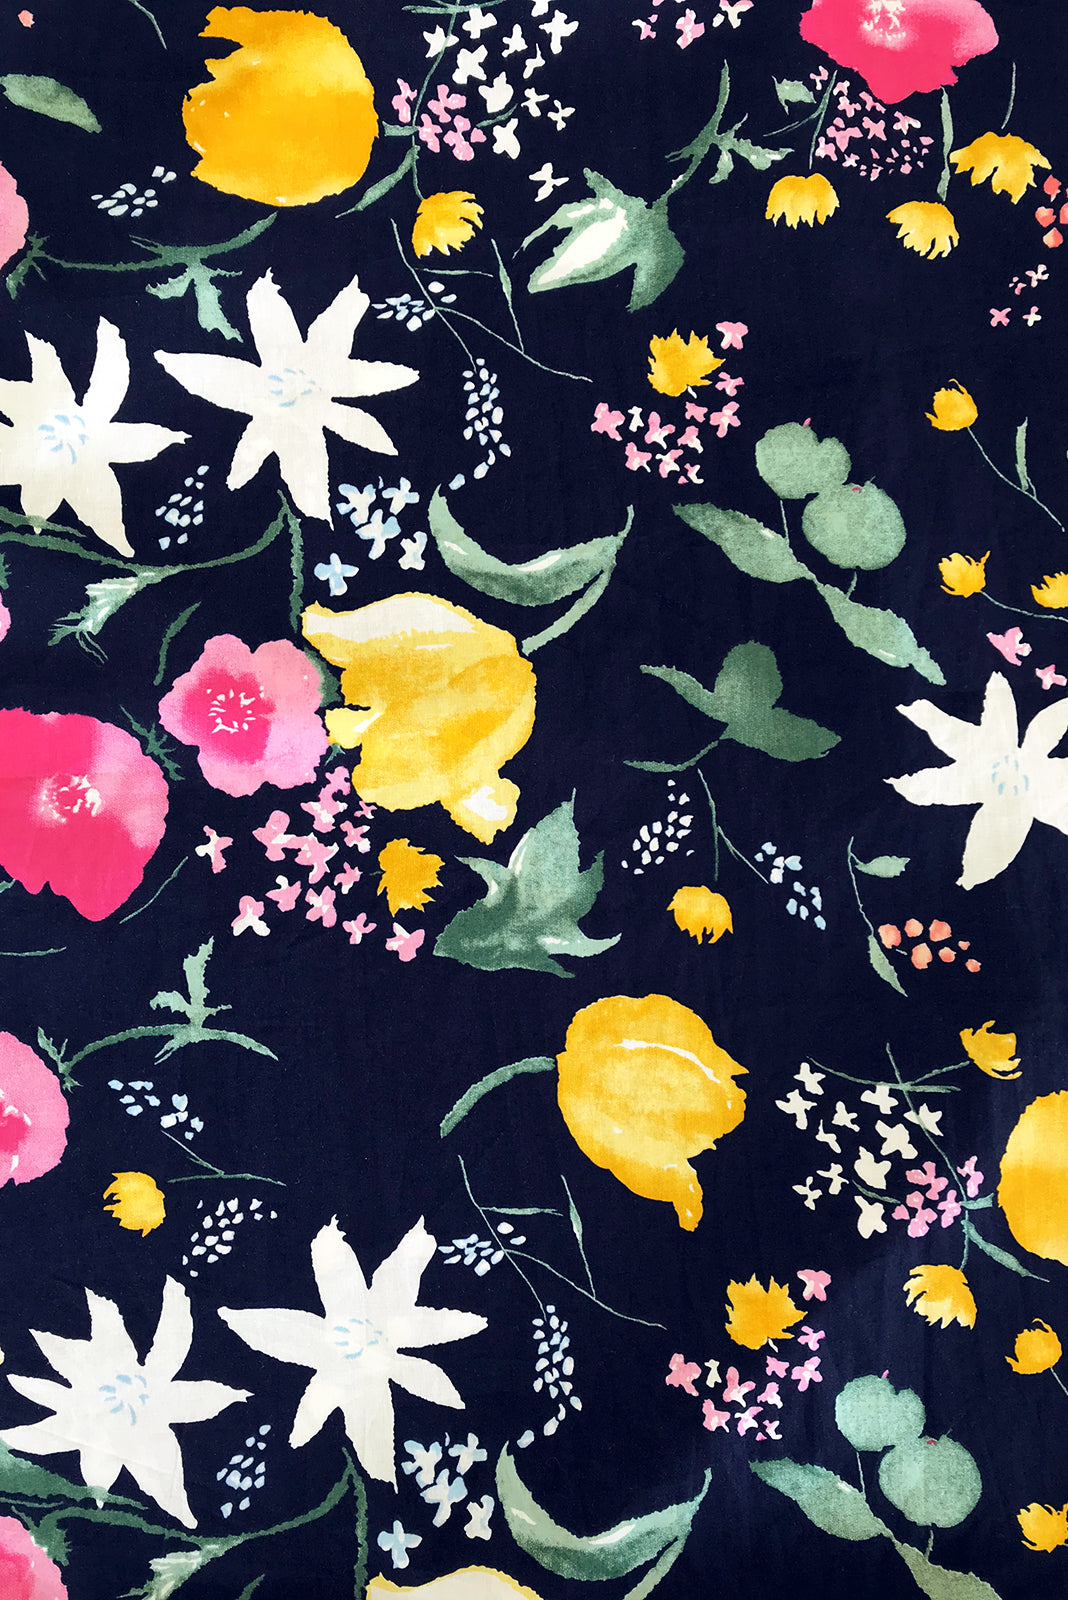 Fabric swatch of Midsummer Emilia's Garden Dress featuring 100% cotton poplin in navy base with bright, retro floral print.